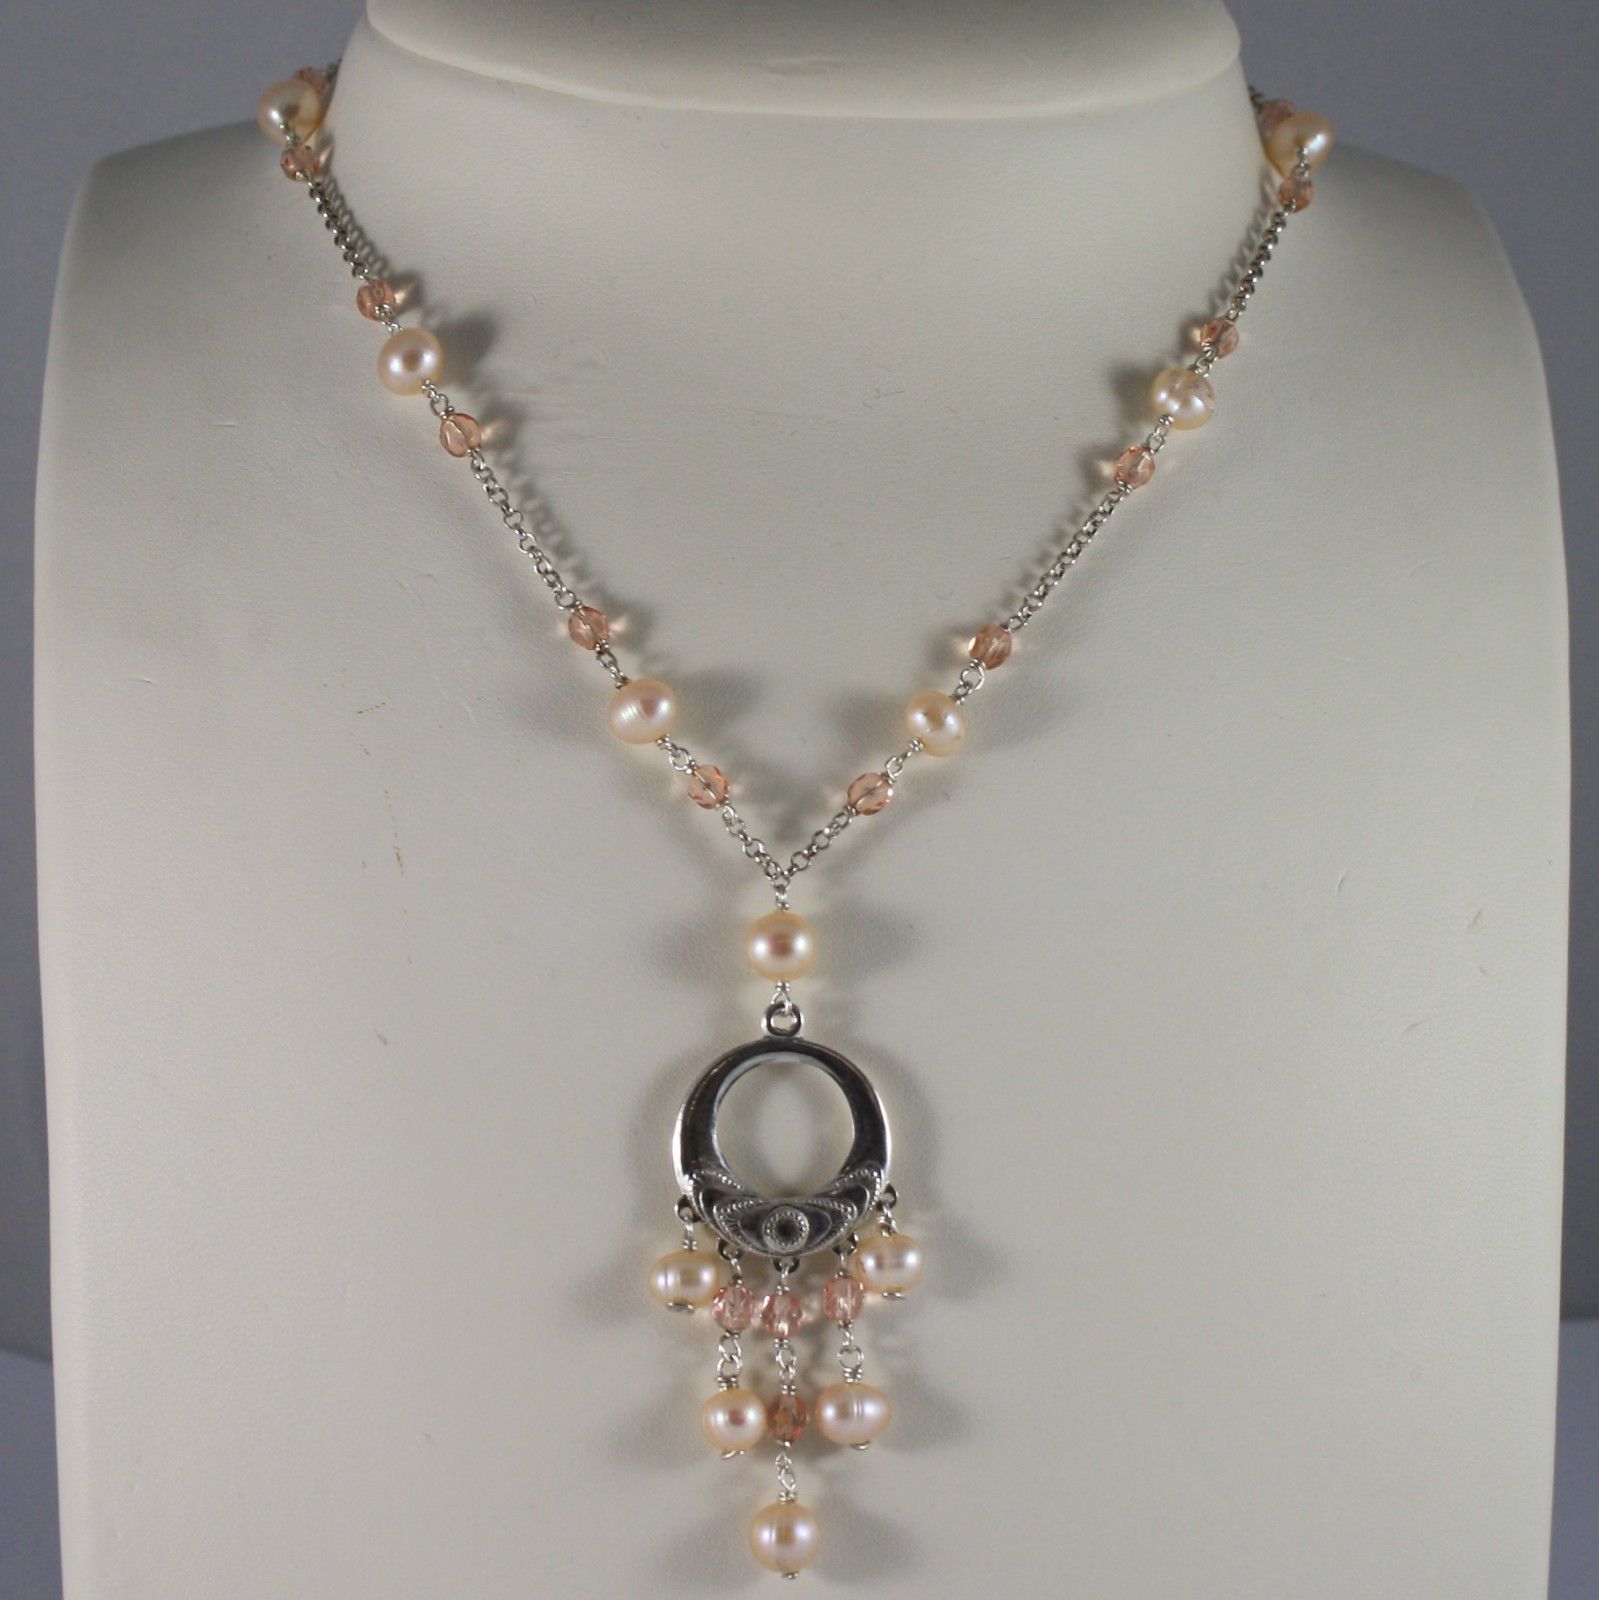 .925 SILVER RHODIUM NECKLACE WITH PINK PEARLS, PINK CRYSTALS AND PENDANT